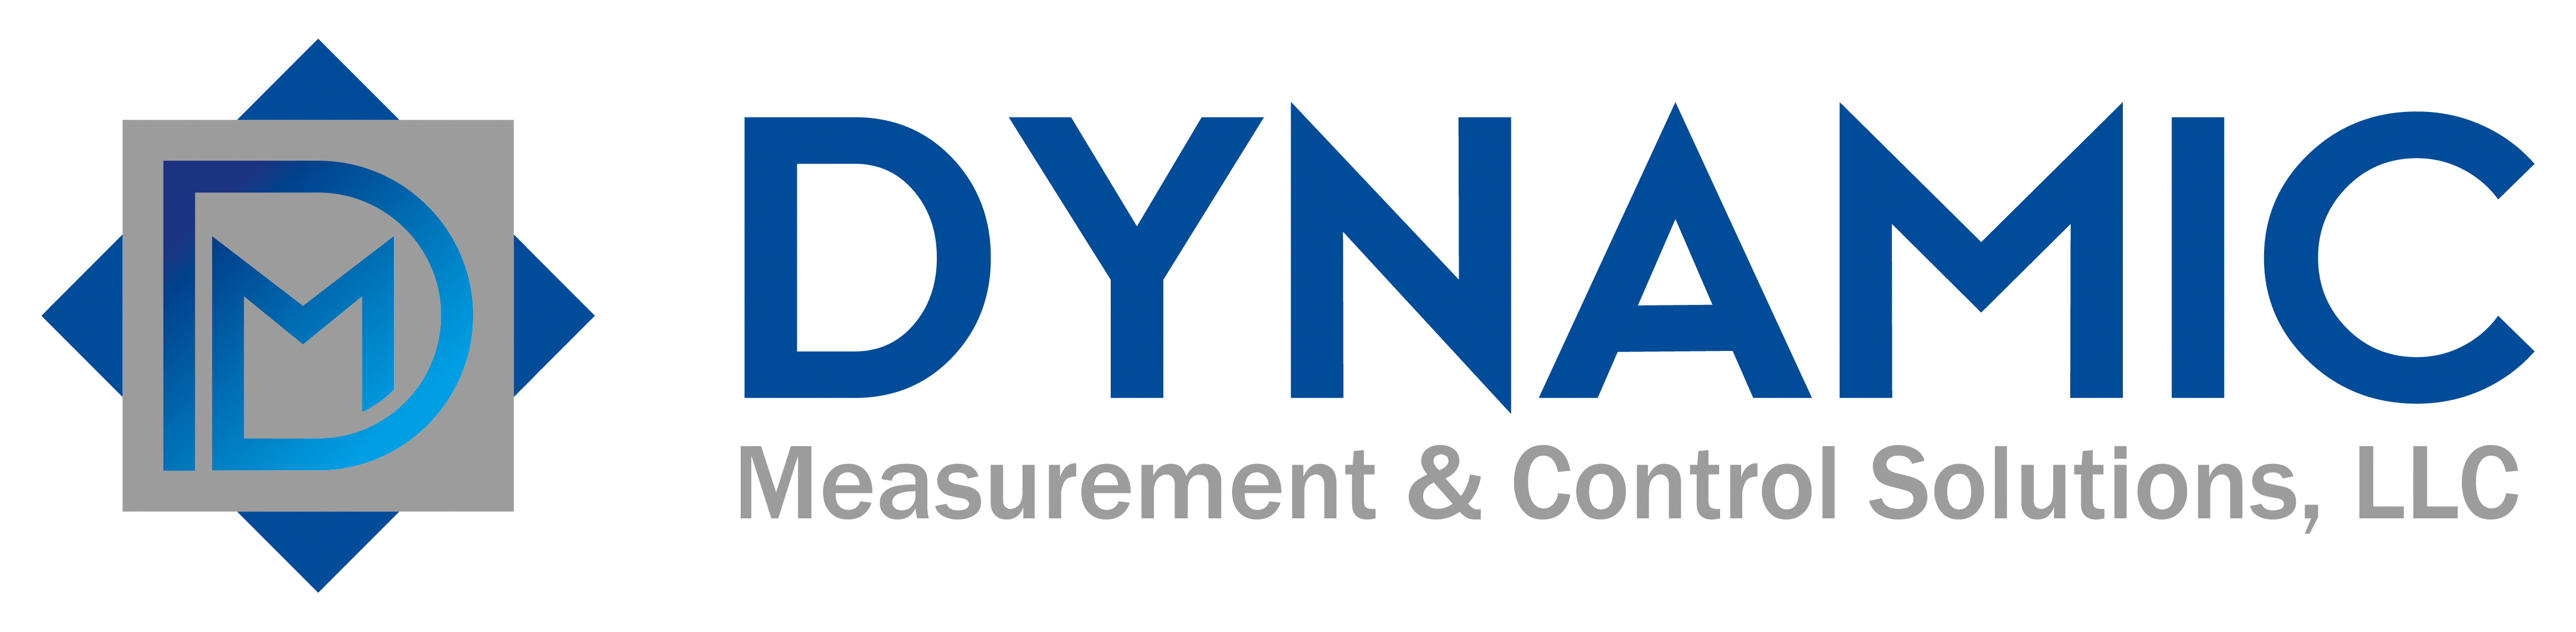 Dynamic Measurement and Control Solutions